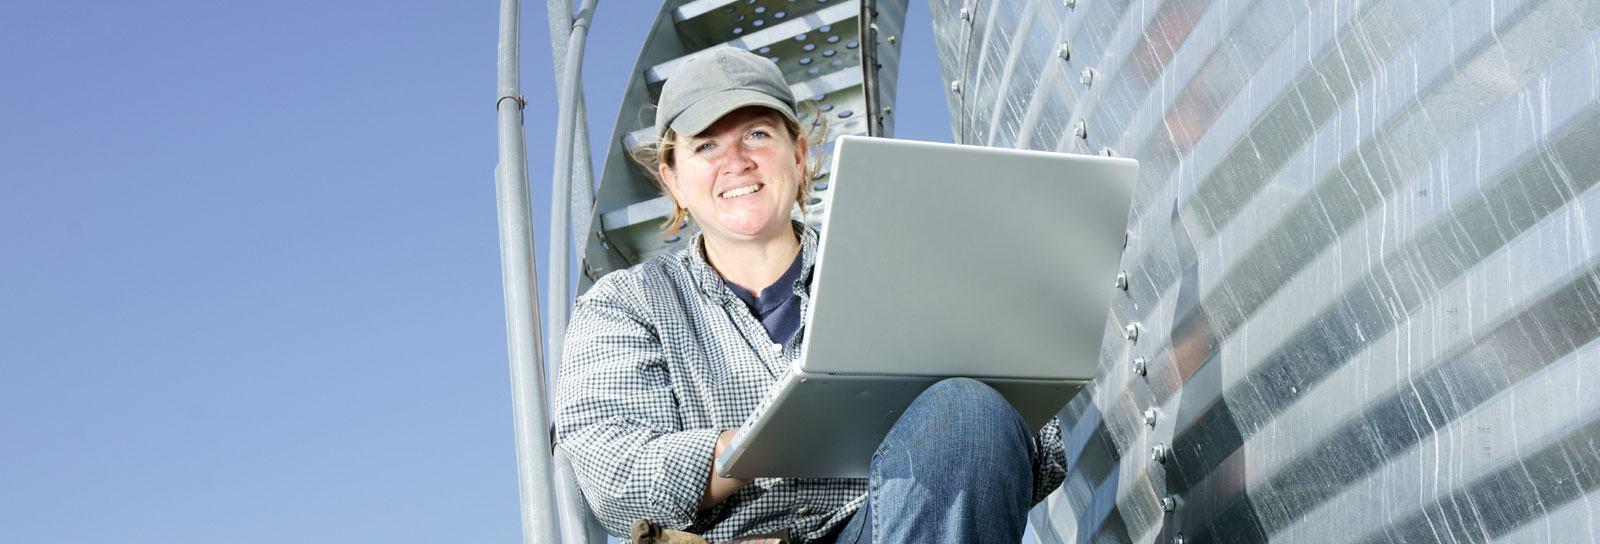 Farm safety coordinator sitting on a grain bin stairway, reviewing her compliance reports on a laptop.